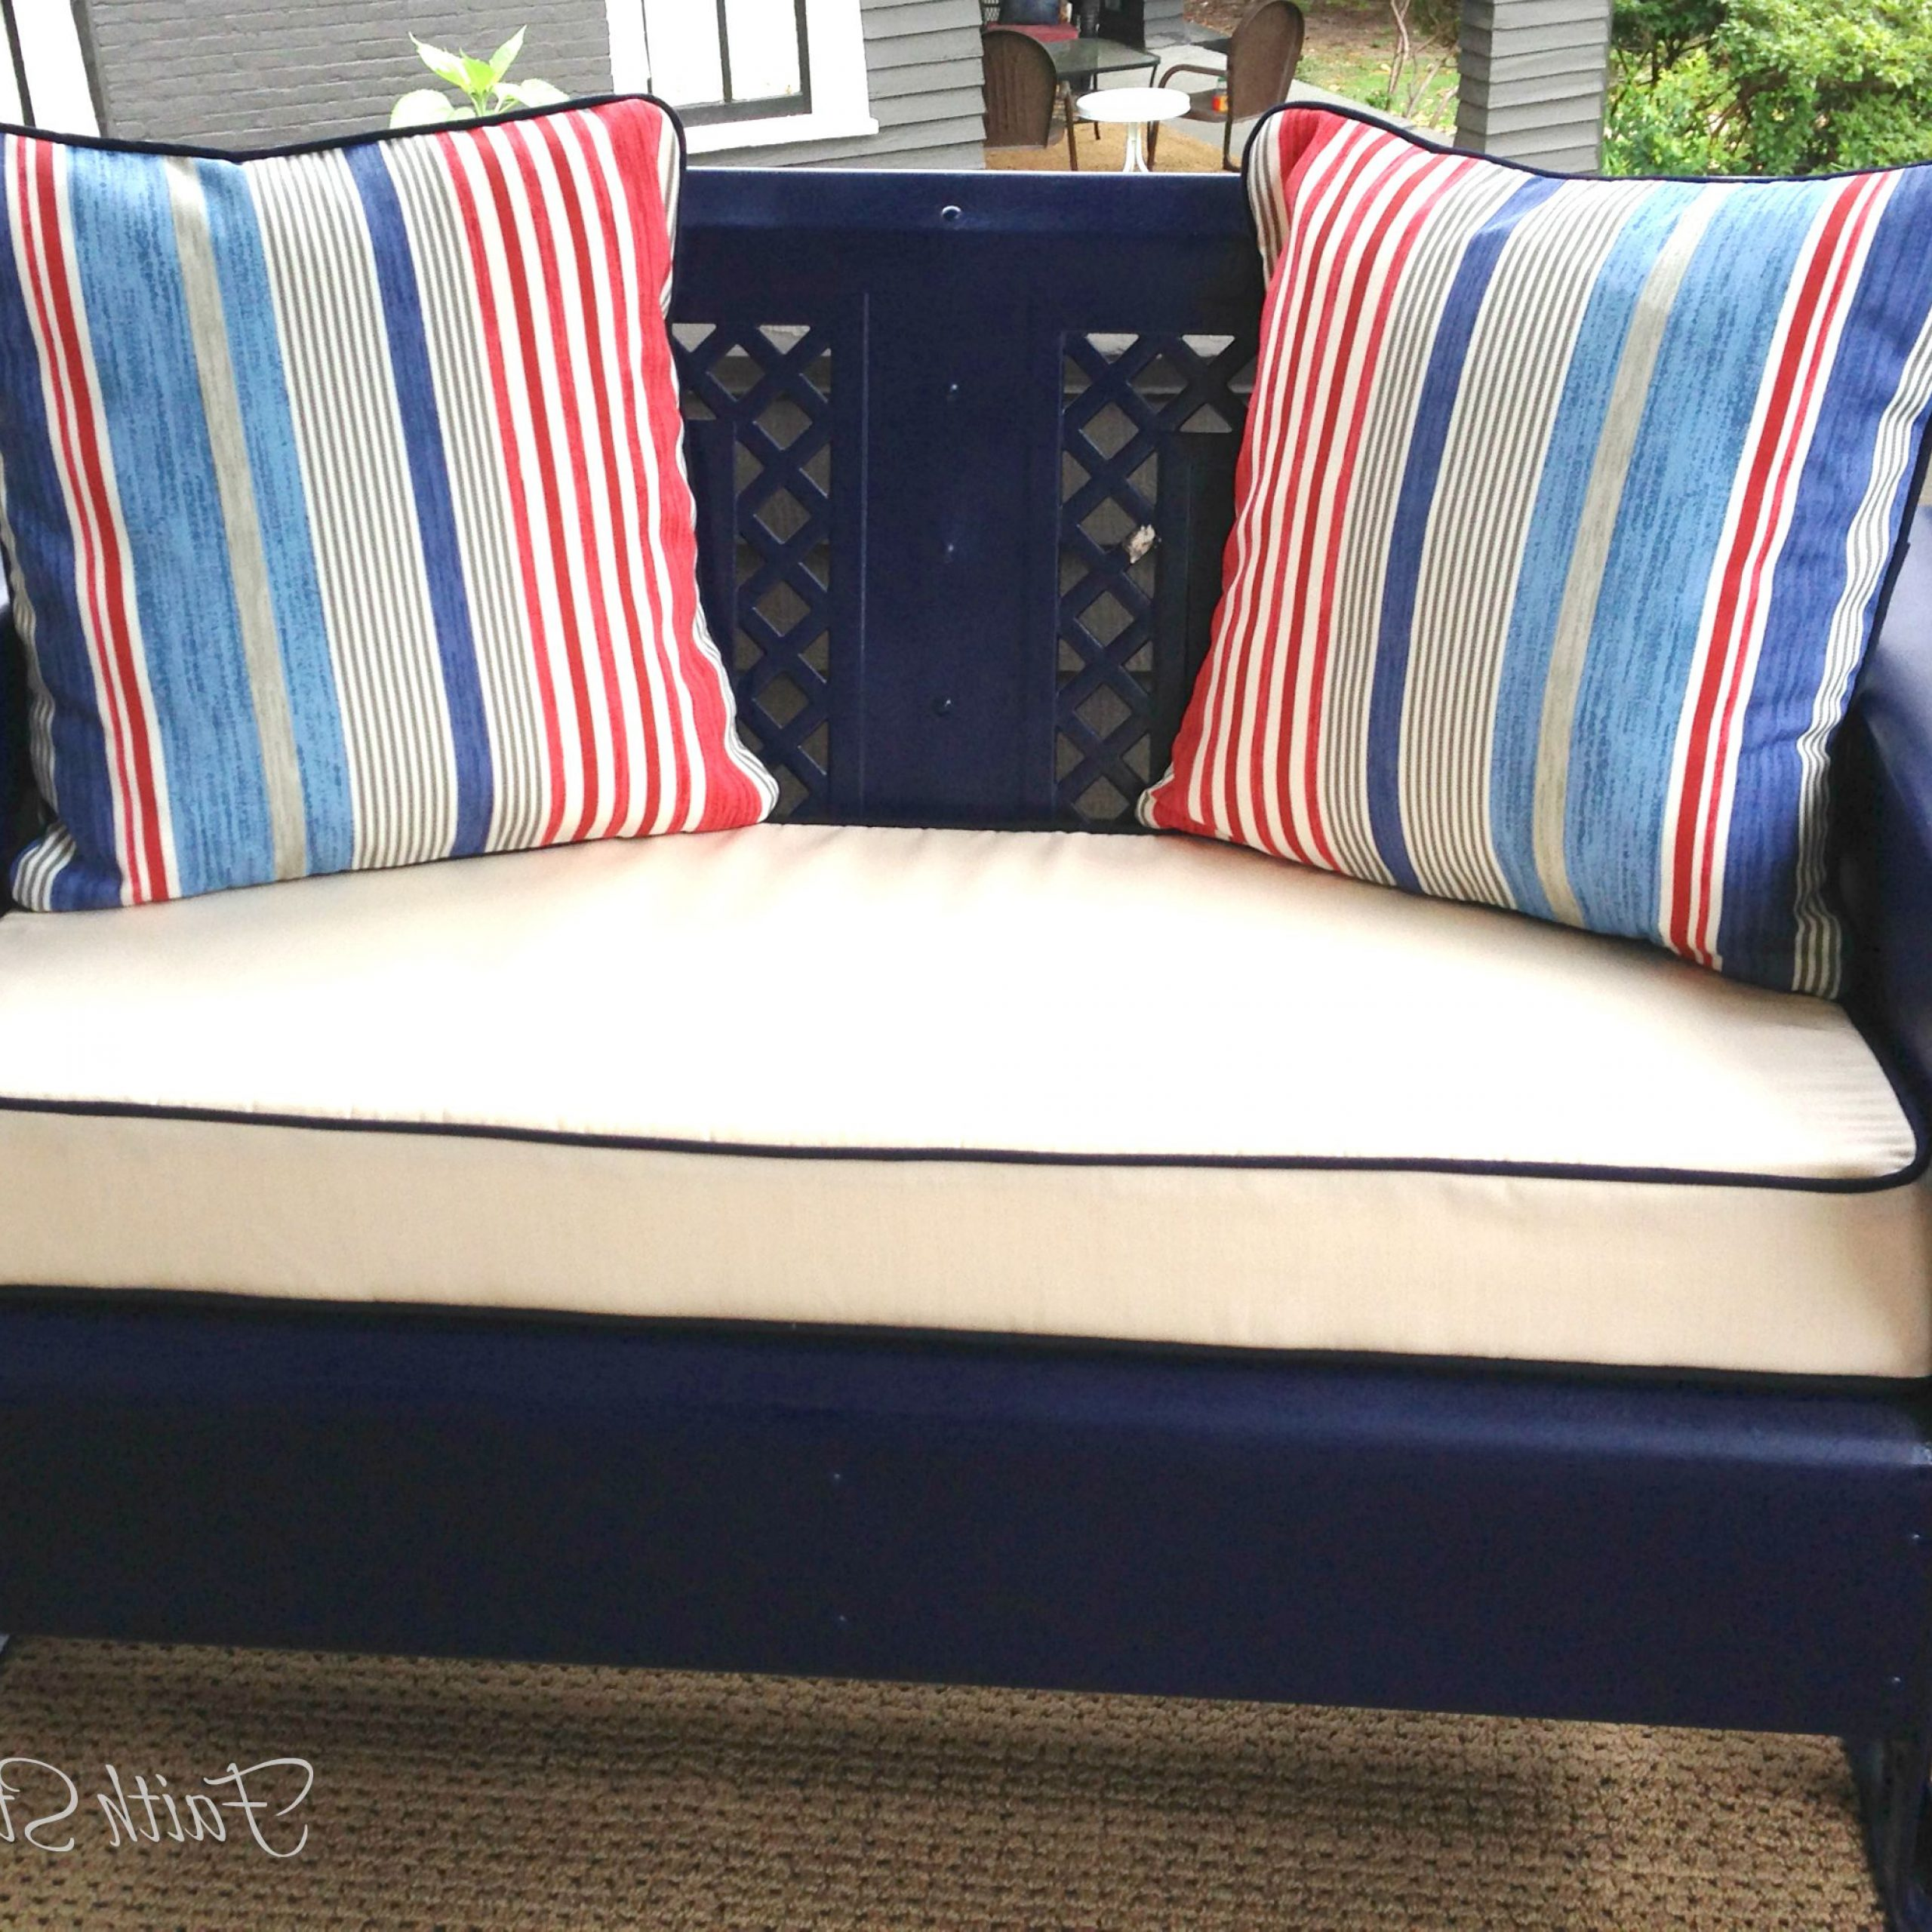 Current Furniture: Vintage Aluminum Porch Glider With Cushions For Inside Outdoor Loveseat Gliders With Cushion (Gallery 24 of 30)